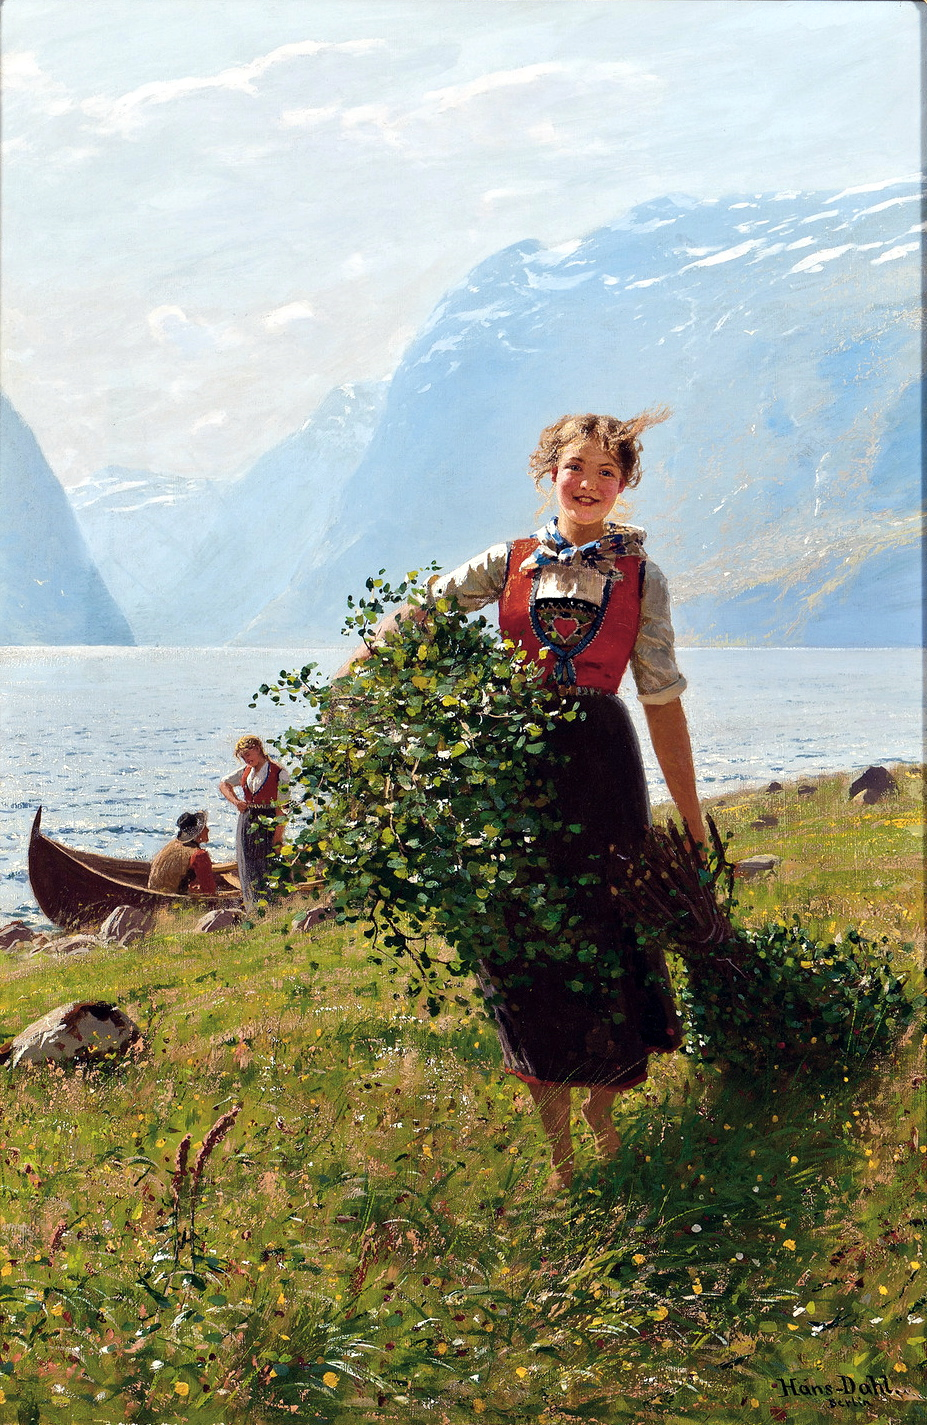 Flirtation by Hans Dahl